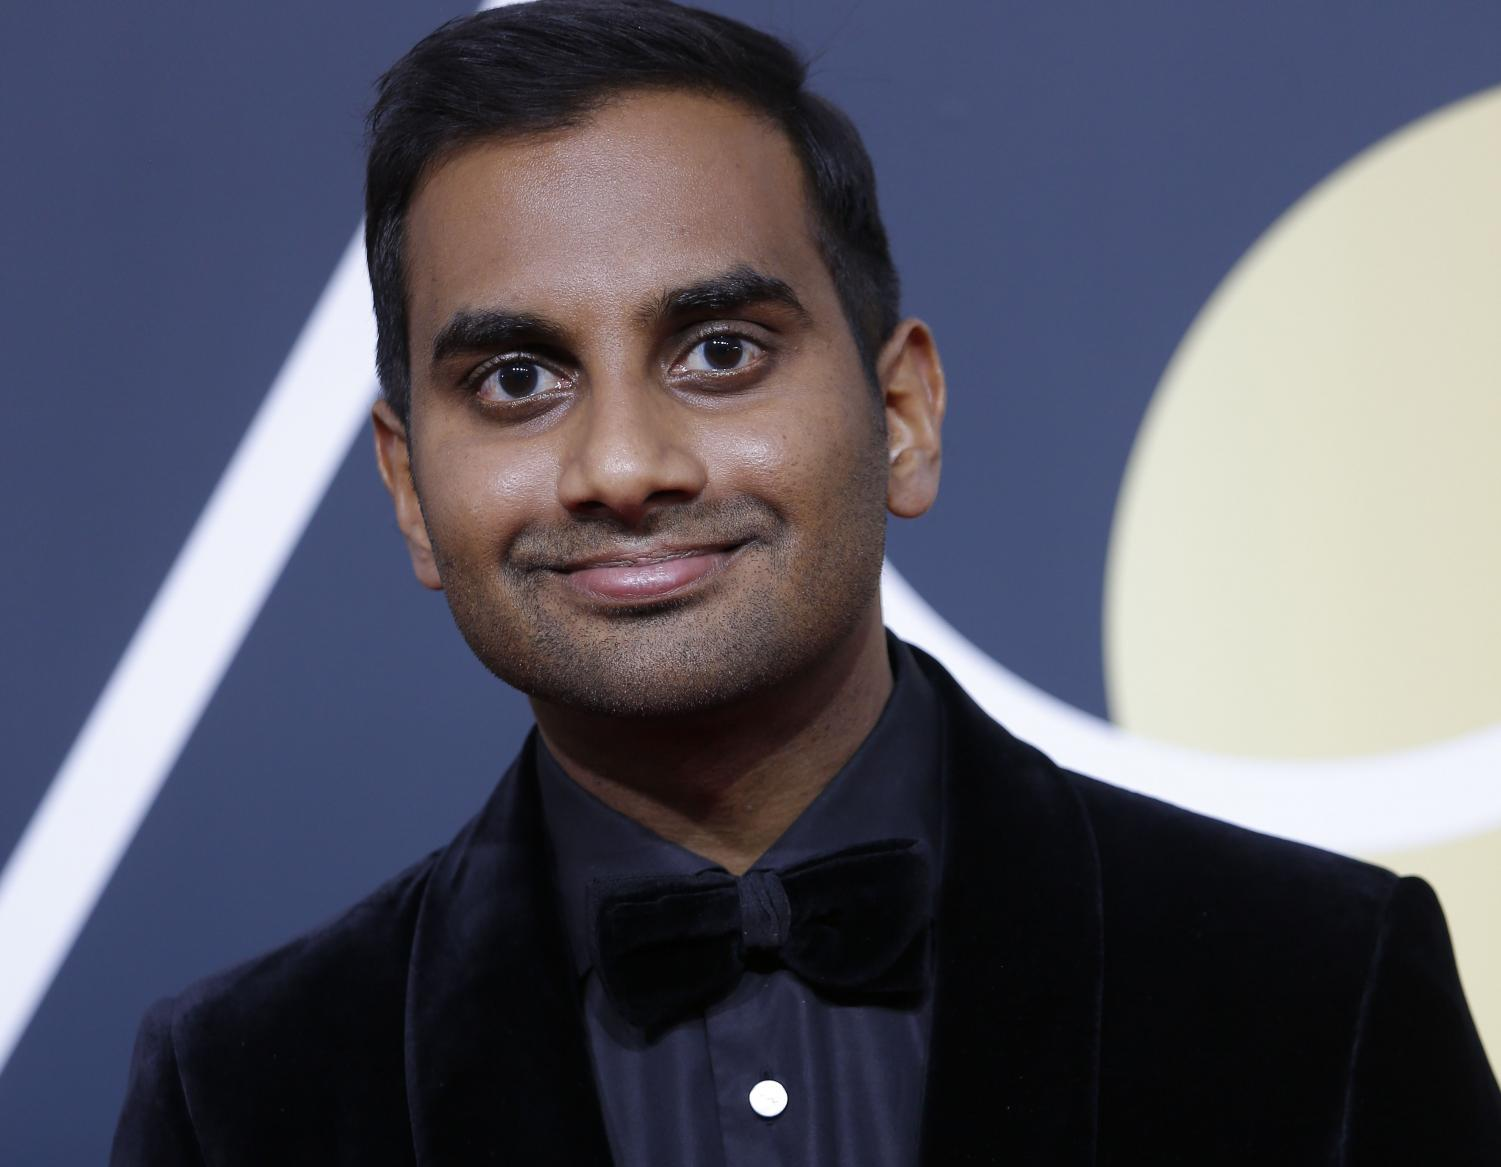 Opinion columnist Brenna Wolfe discusses the emotional abuse tied to acts of sexual coercion, such as the highly publicized incident with comedian Aziz Ansari.